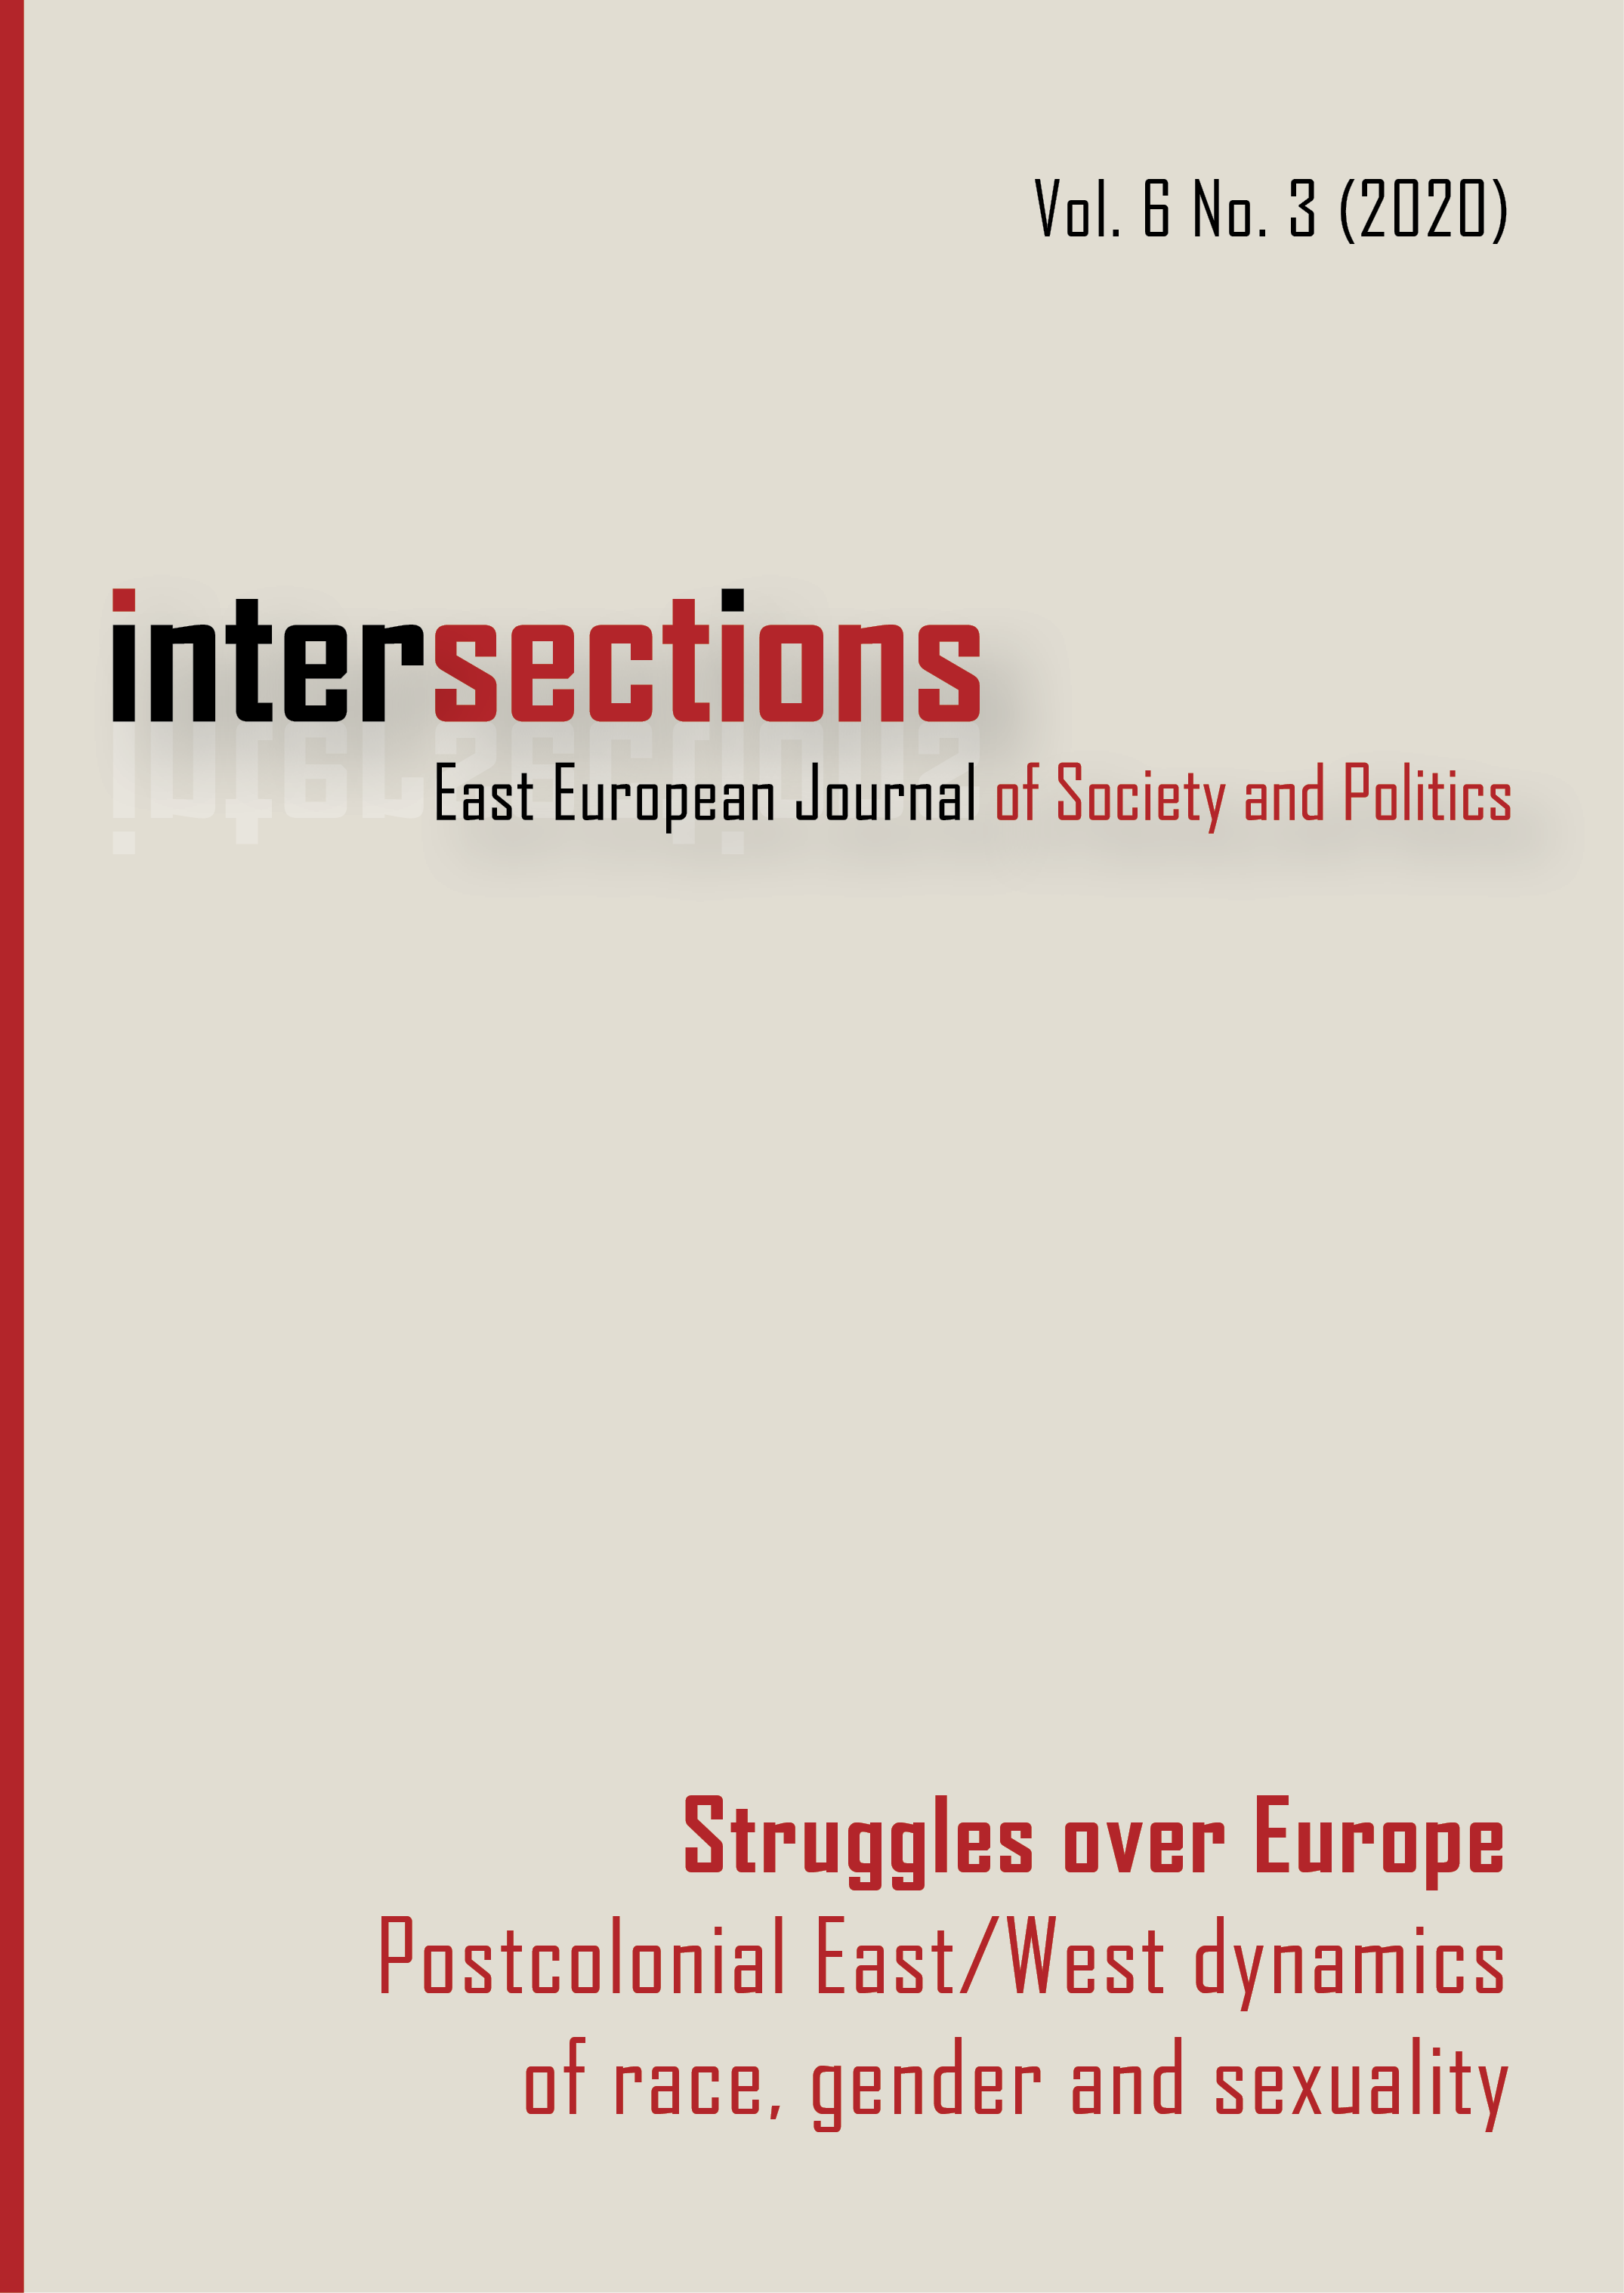 View Vol. 6 No. 3 (2020): Struggles over Europe: Postcolonial East/West Dynamics of Race, Gender and Sexuality